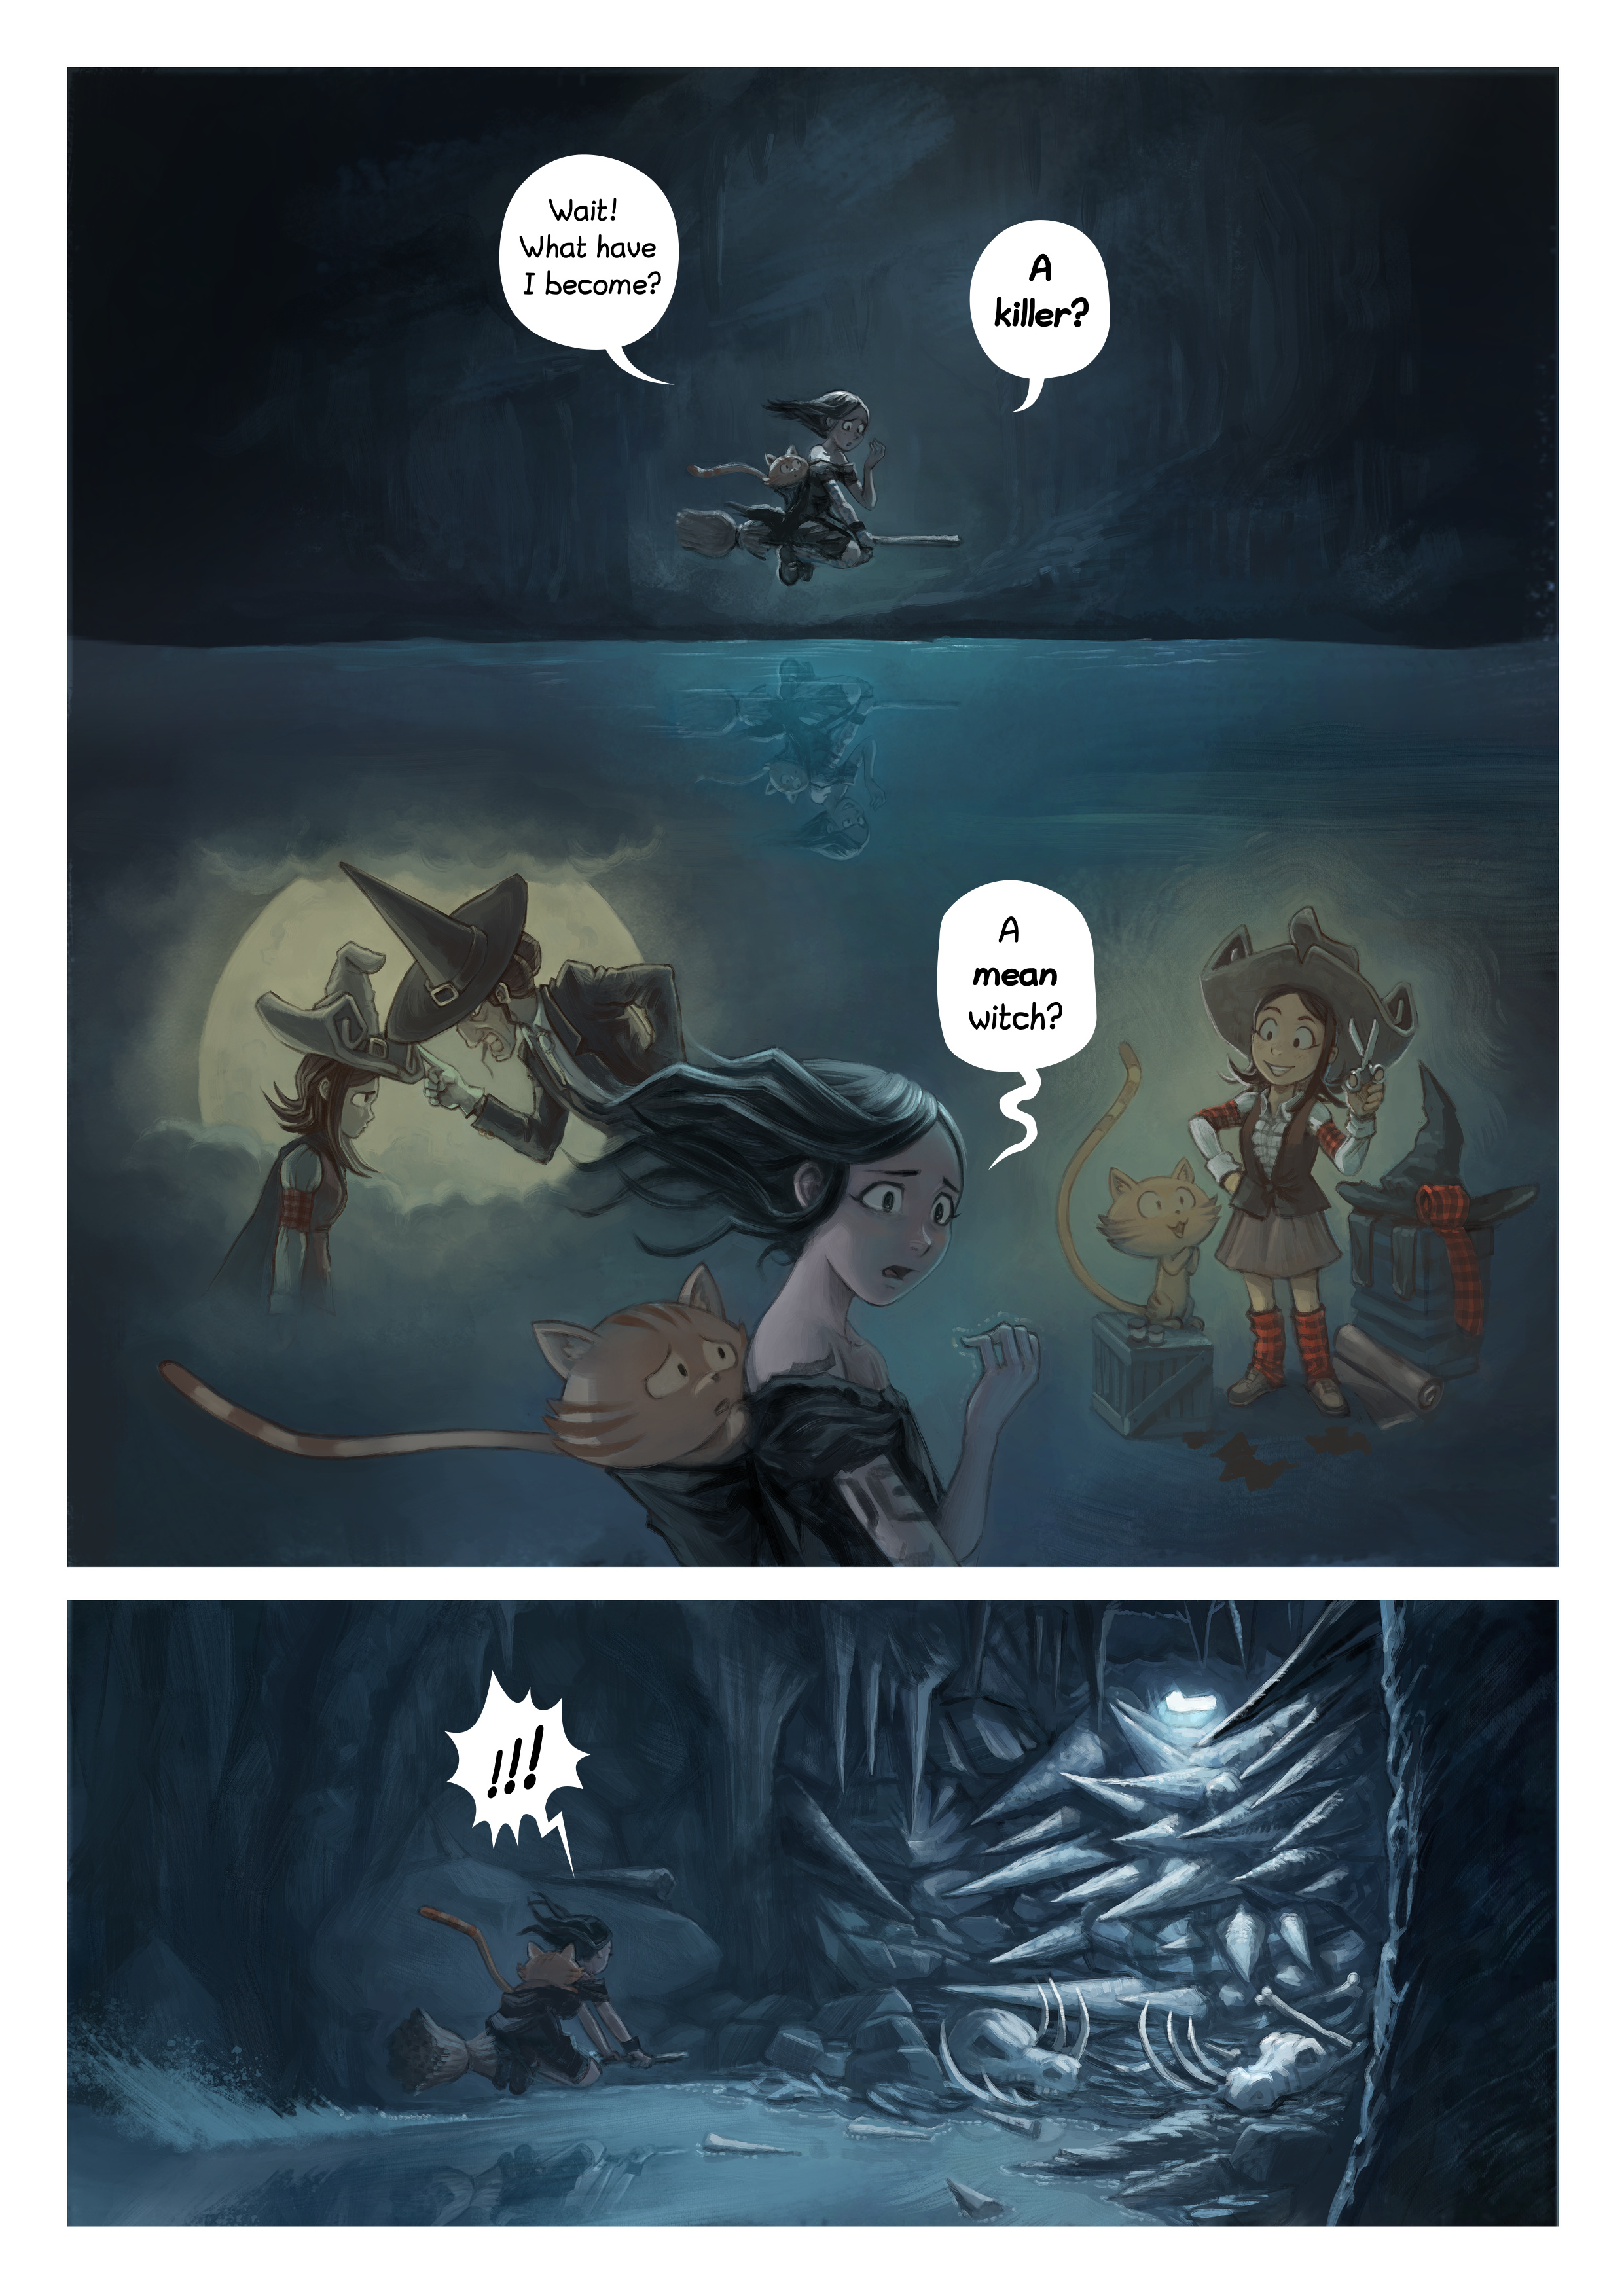 Episode 35: The Reflection, Page 8